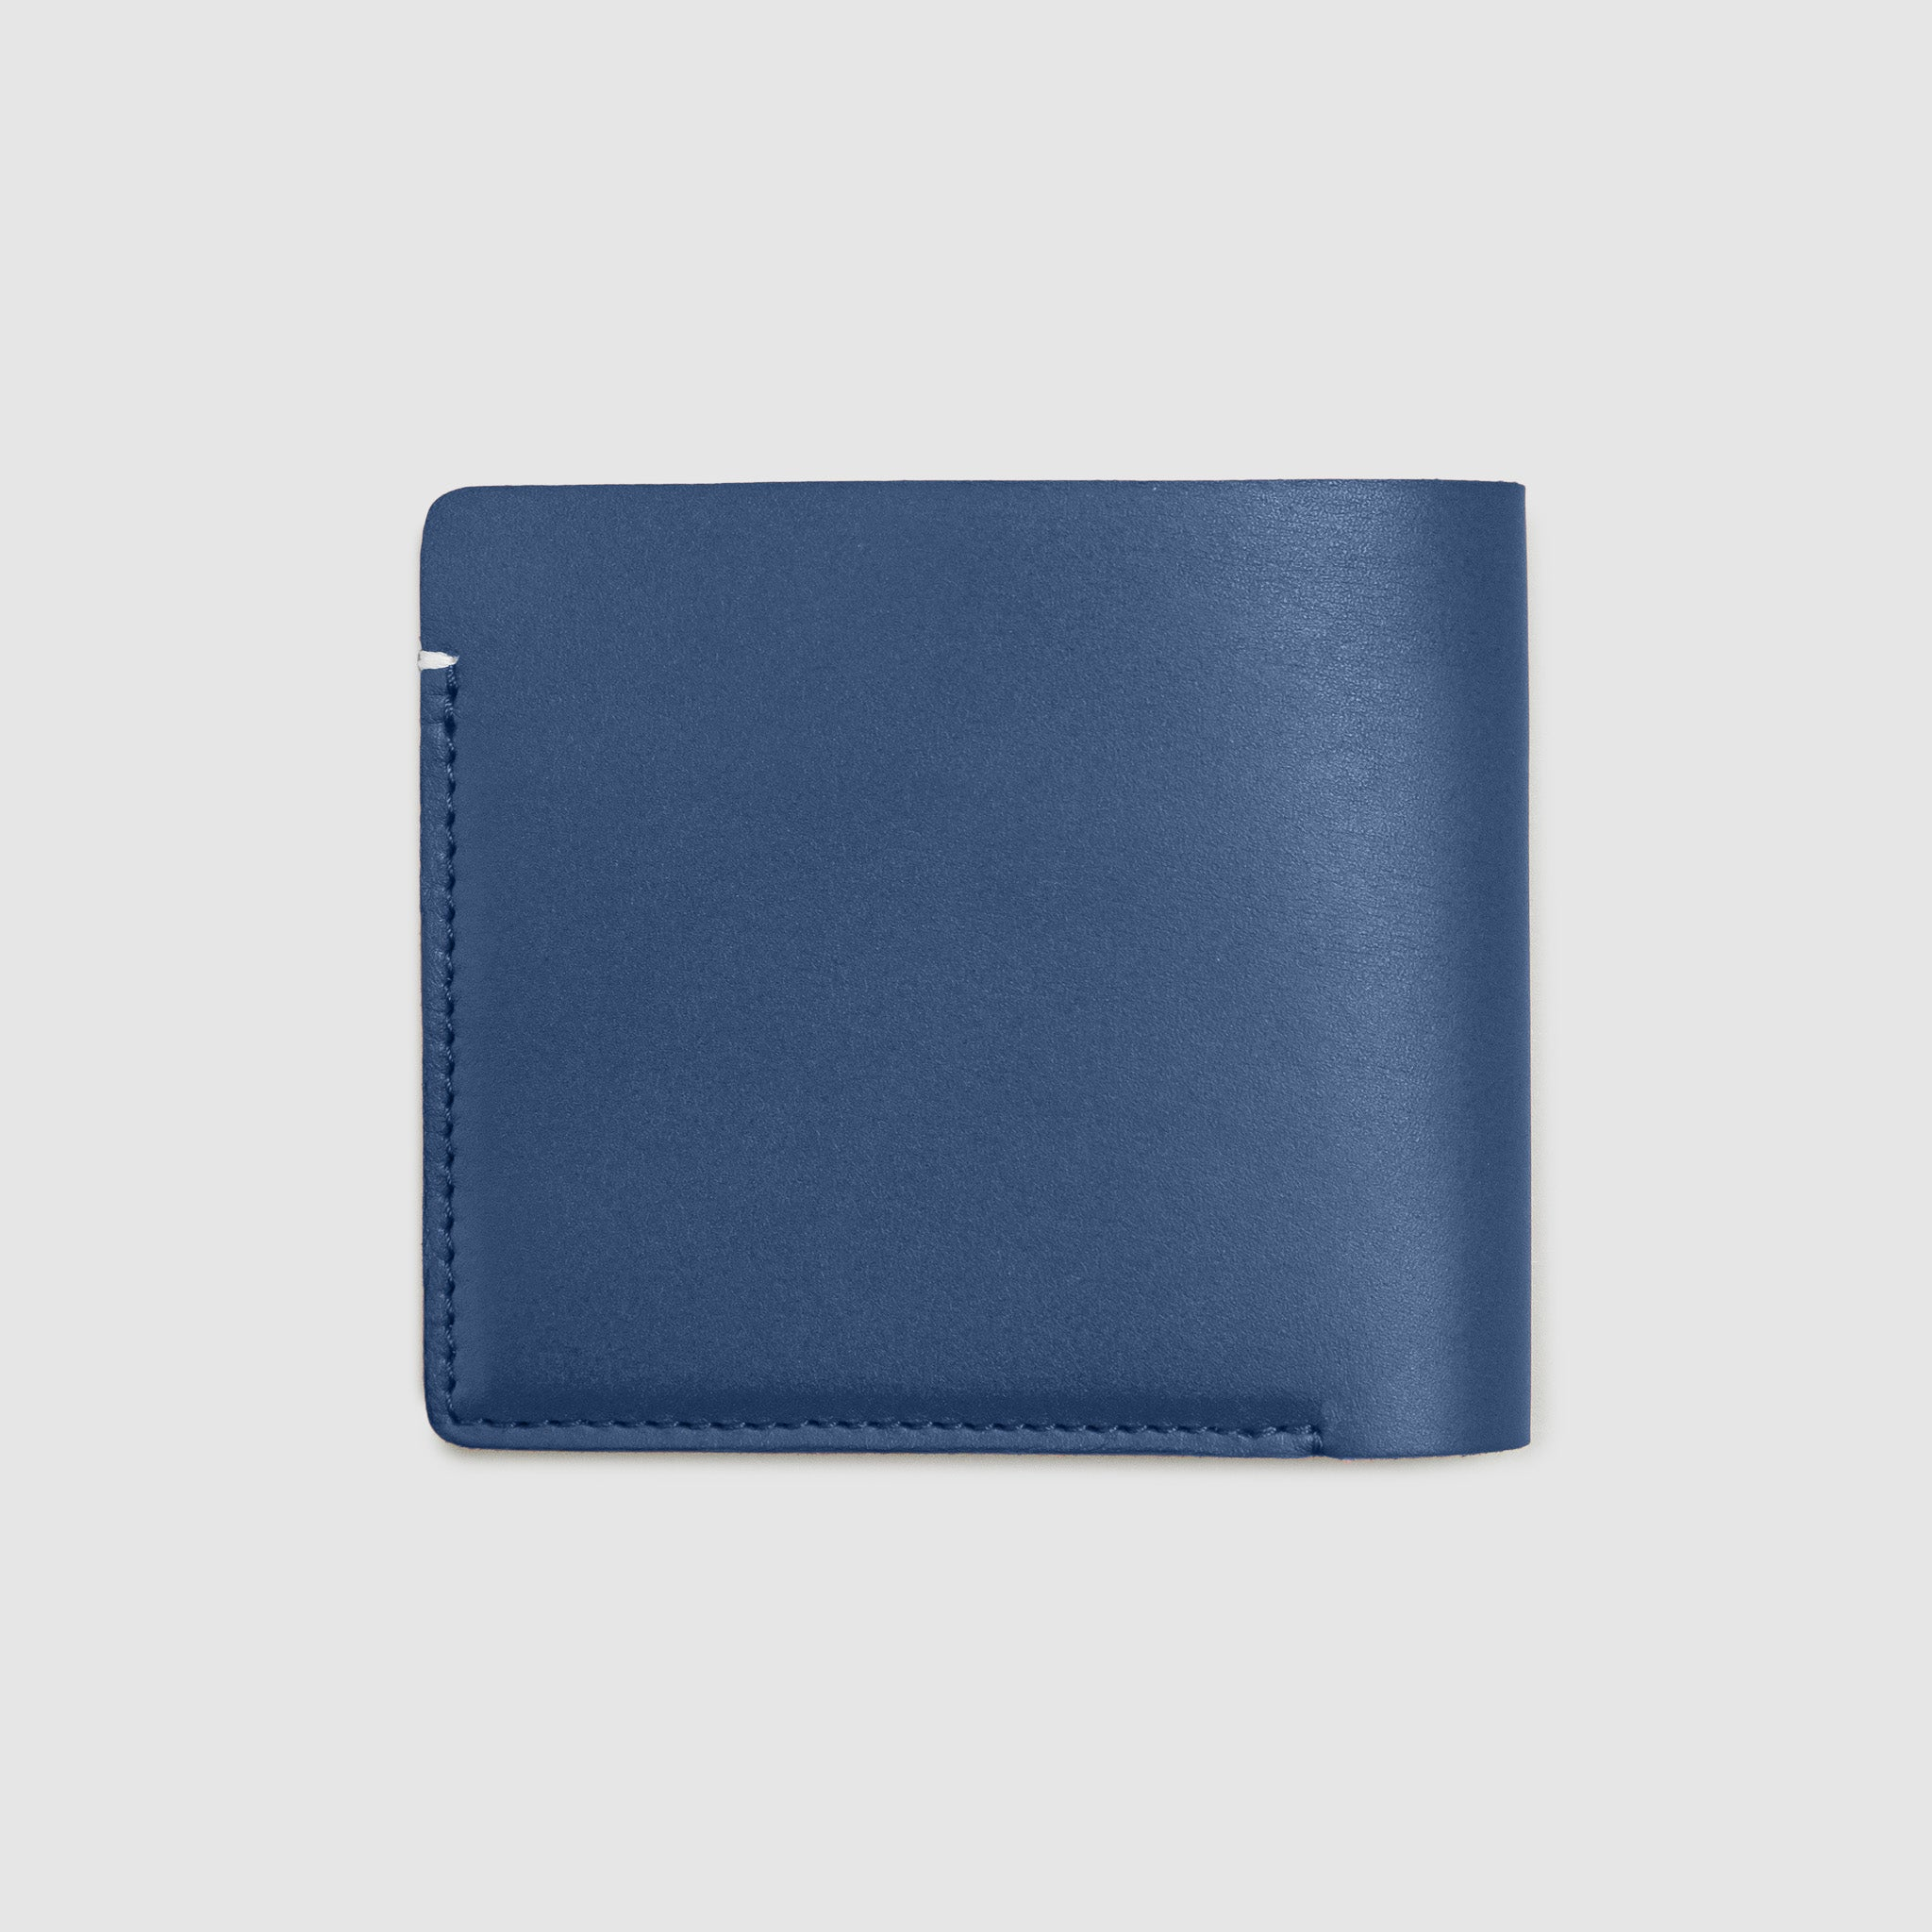 Anson Calder International Billfold Wallet RFID french calfskin leather _cobalt